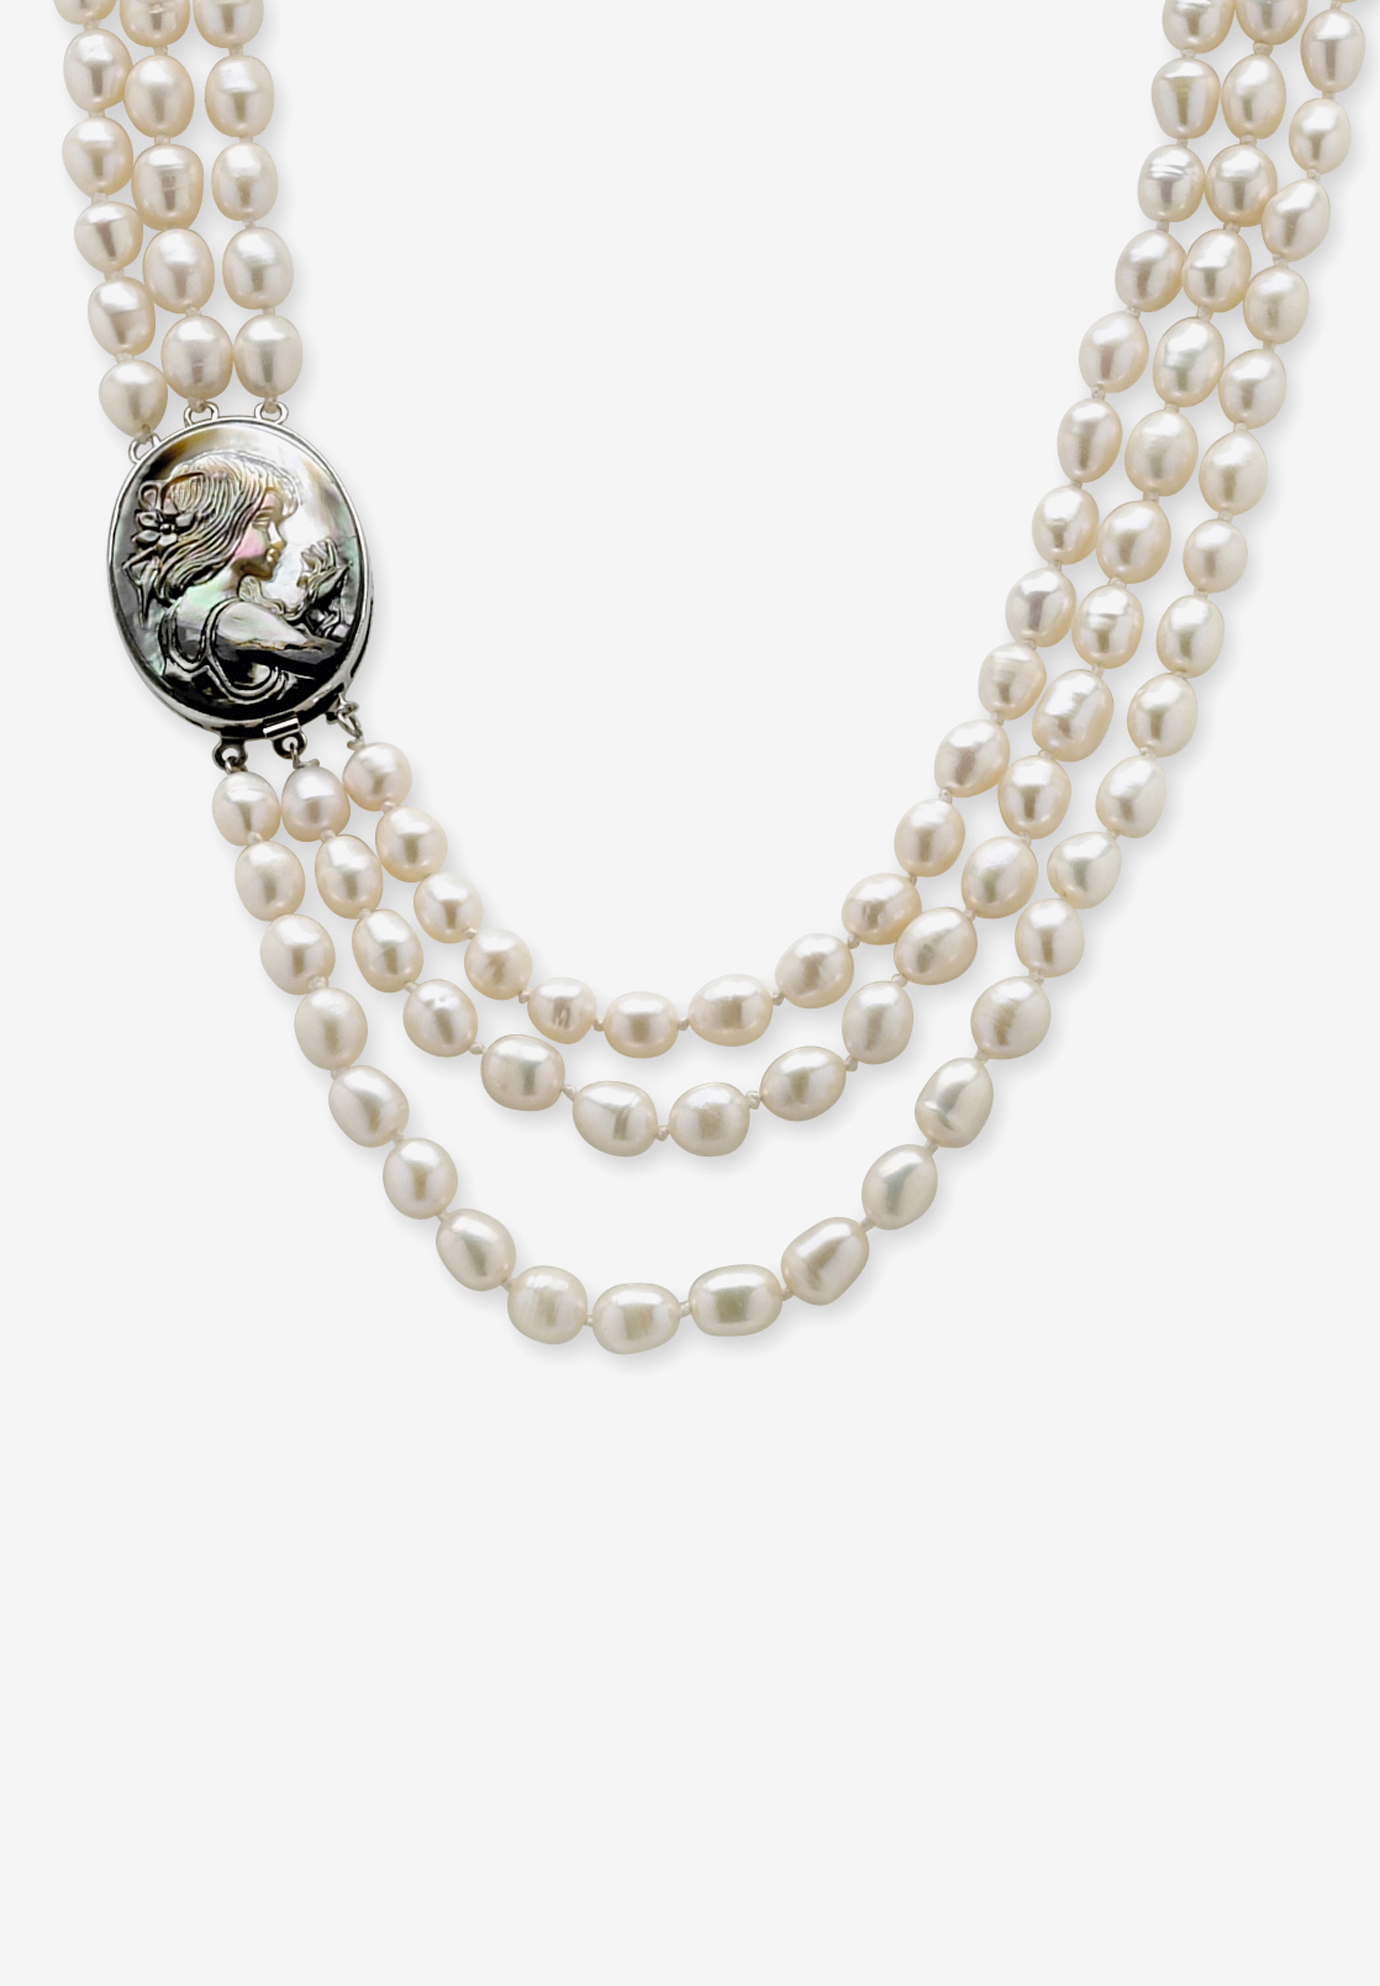 "Silver Tone Multi Strand Cameo Necklace Cultured Freshwater Pearl 28"", PEARL"